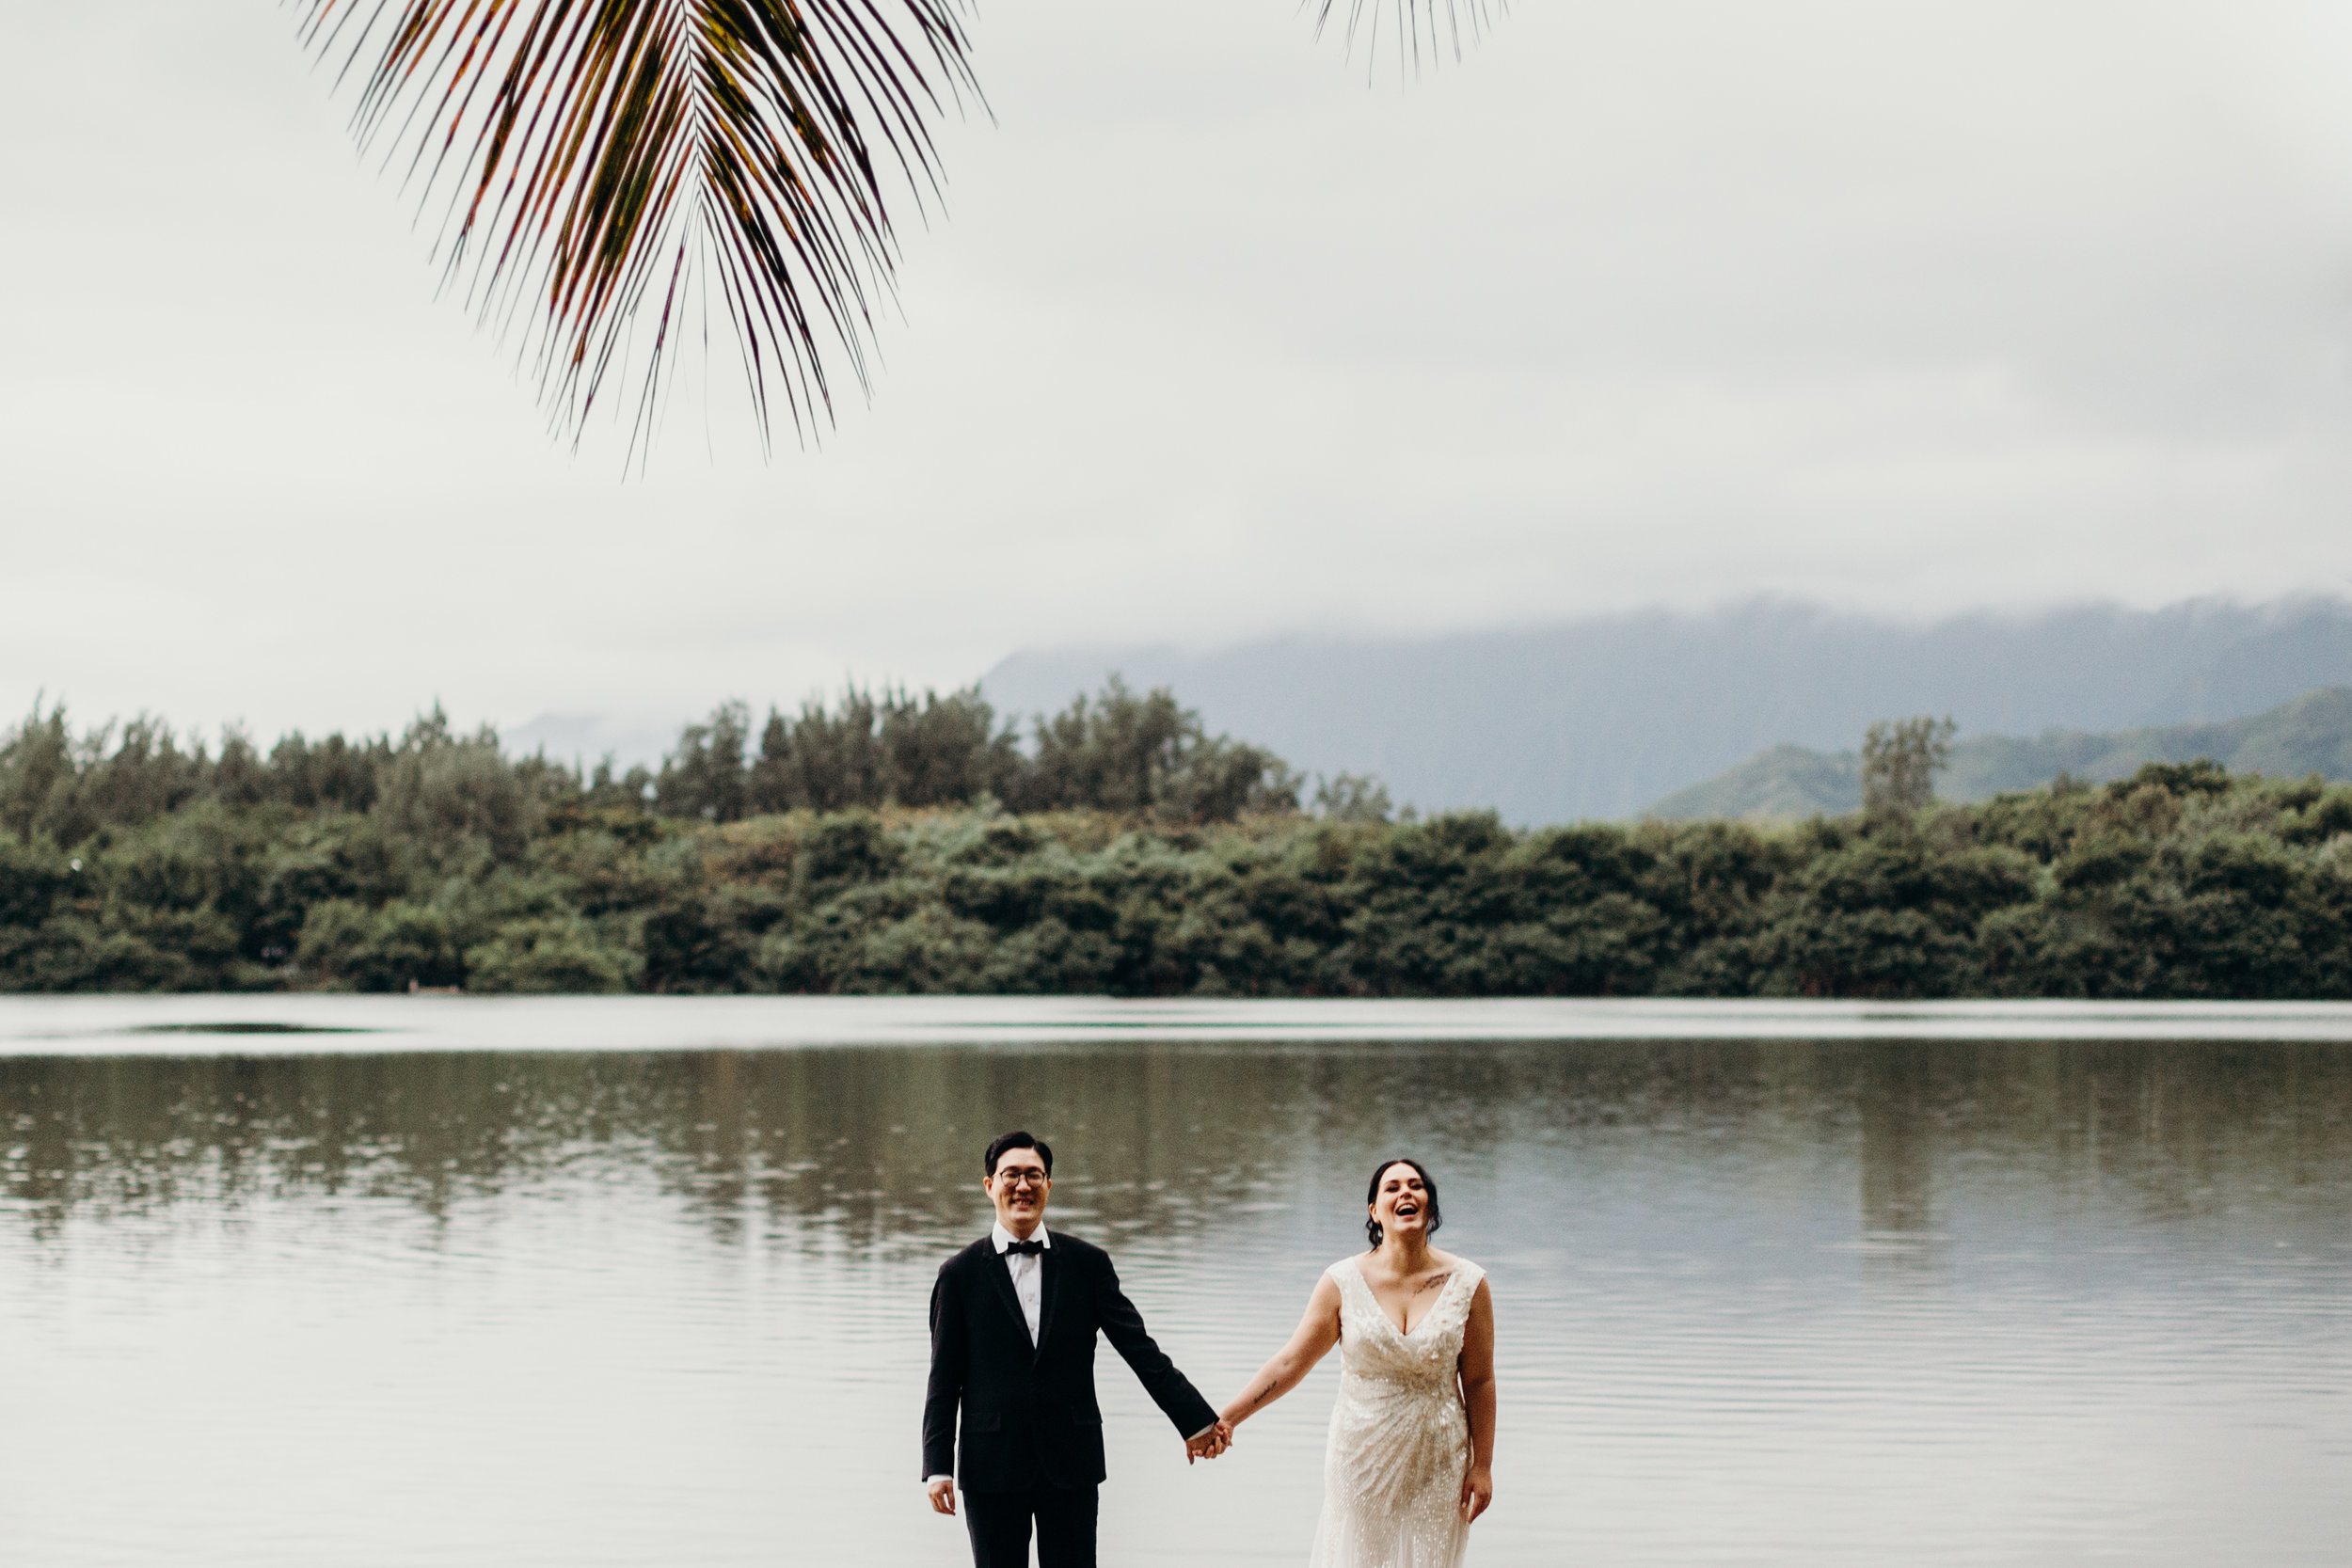 keani-bakula-hawaii-wedding-photographer-44.jpg